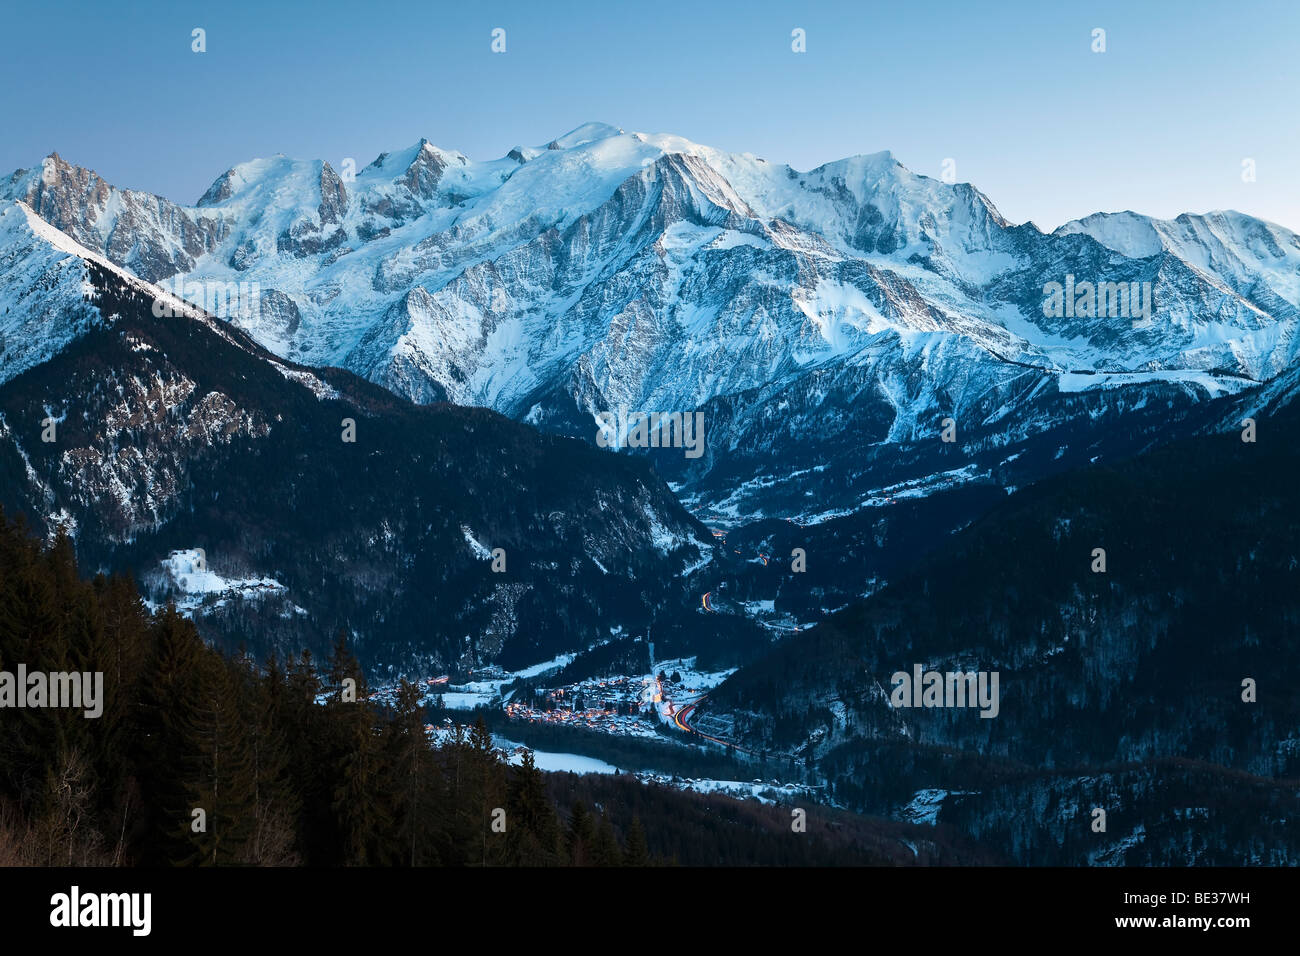 chamonix mont blanc french alps haute savoie chamonix france stock photo 25887613 alamy. Black Bedroom Furniture Sets. Home Design Ideas